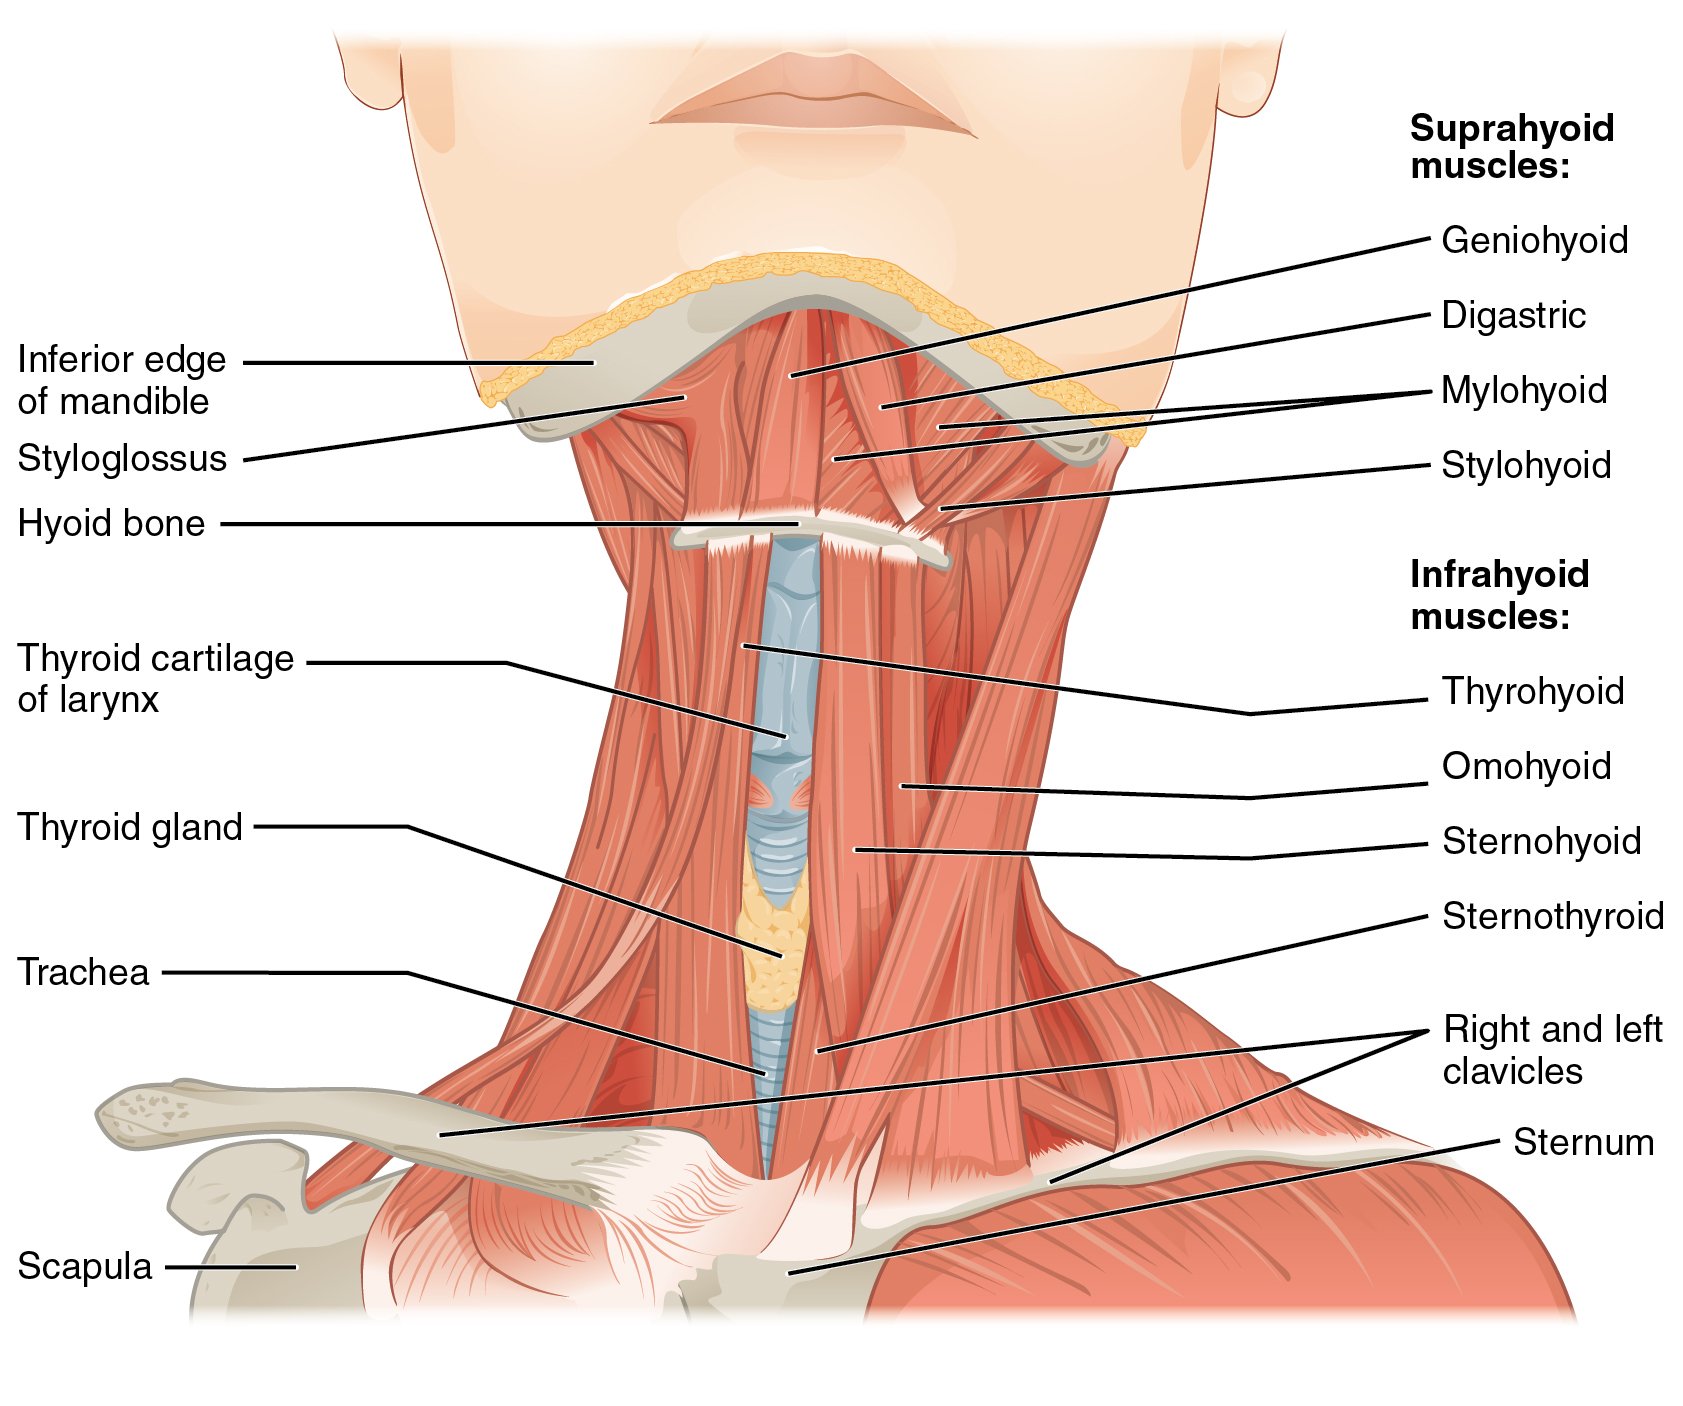 hight resolution of this figure shows the front view of a person s neck with the major muscle groups labeled